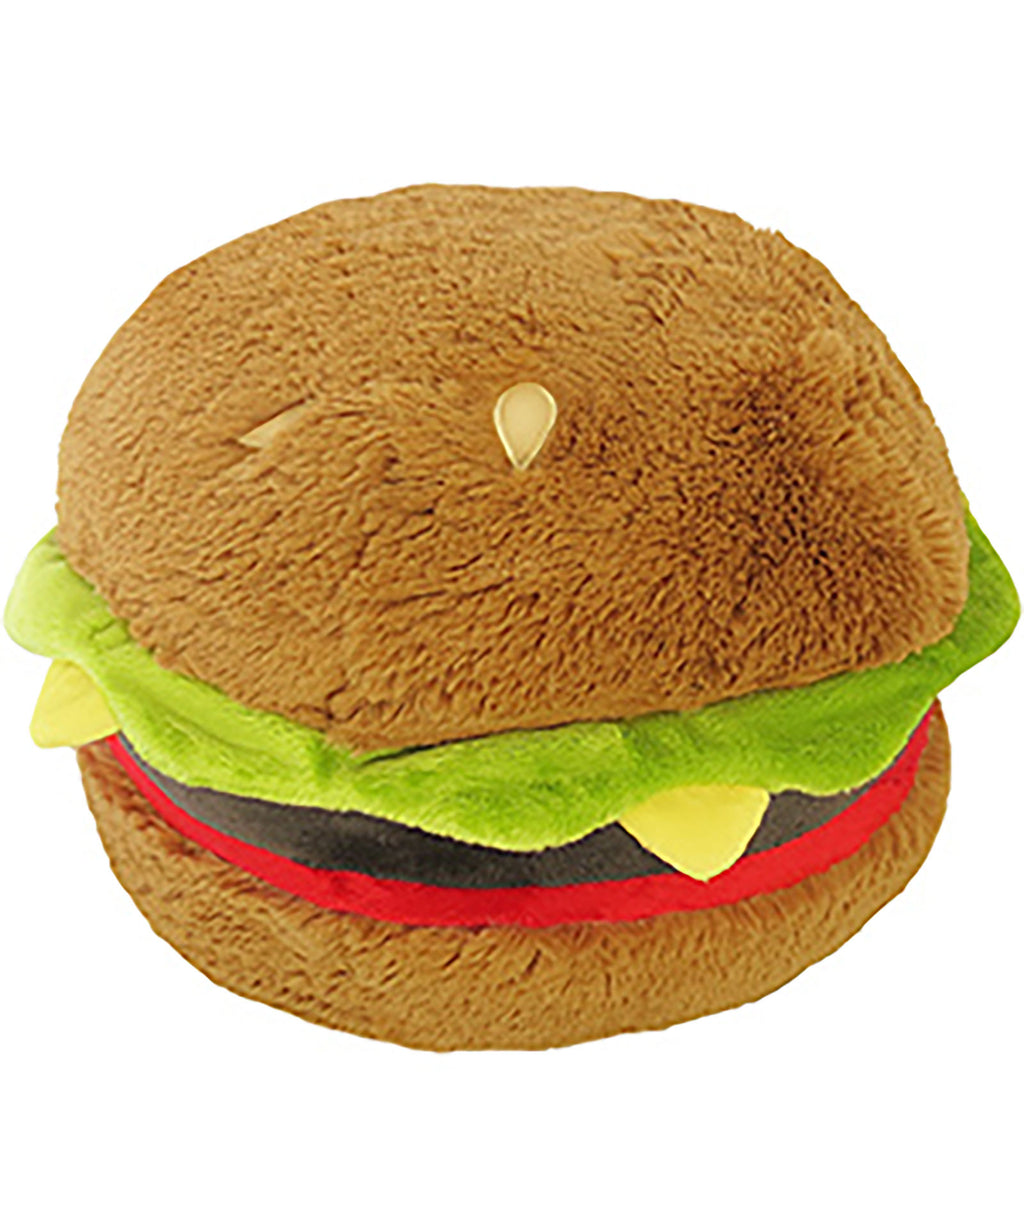 Squishable Hamburger - Frankie's on the Park